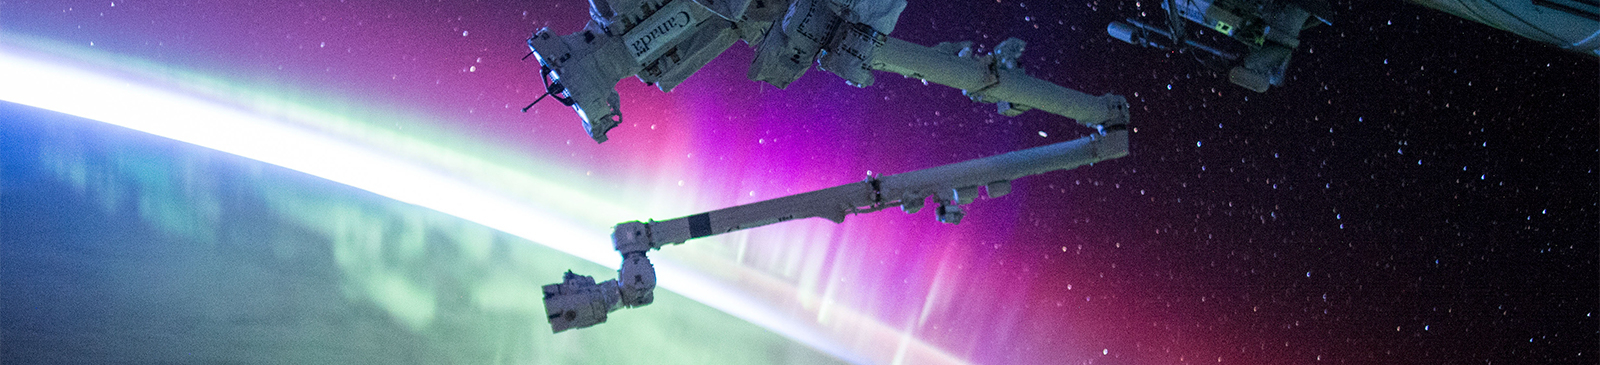 Foto van NASA in de ruimte - Unsplash